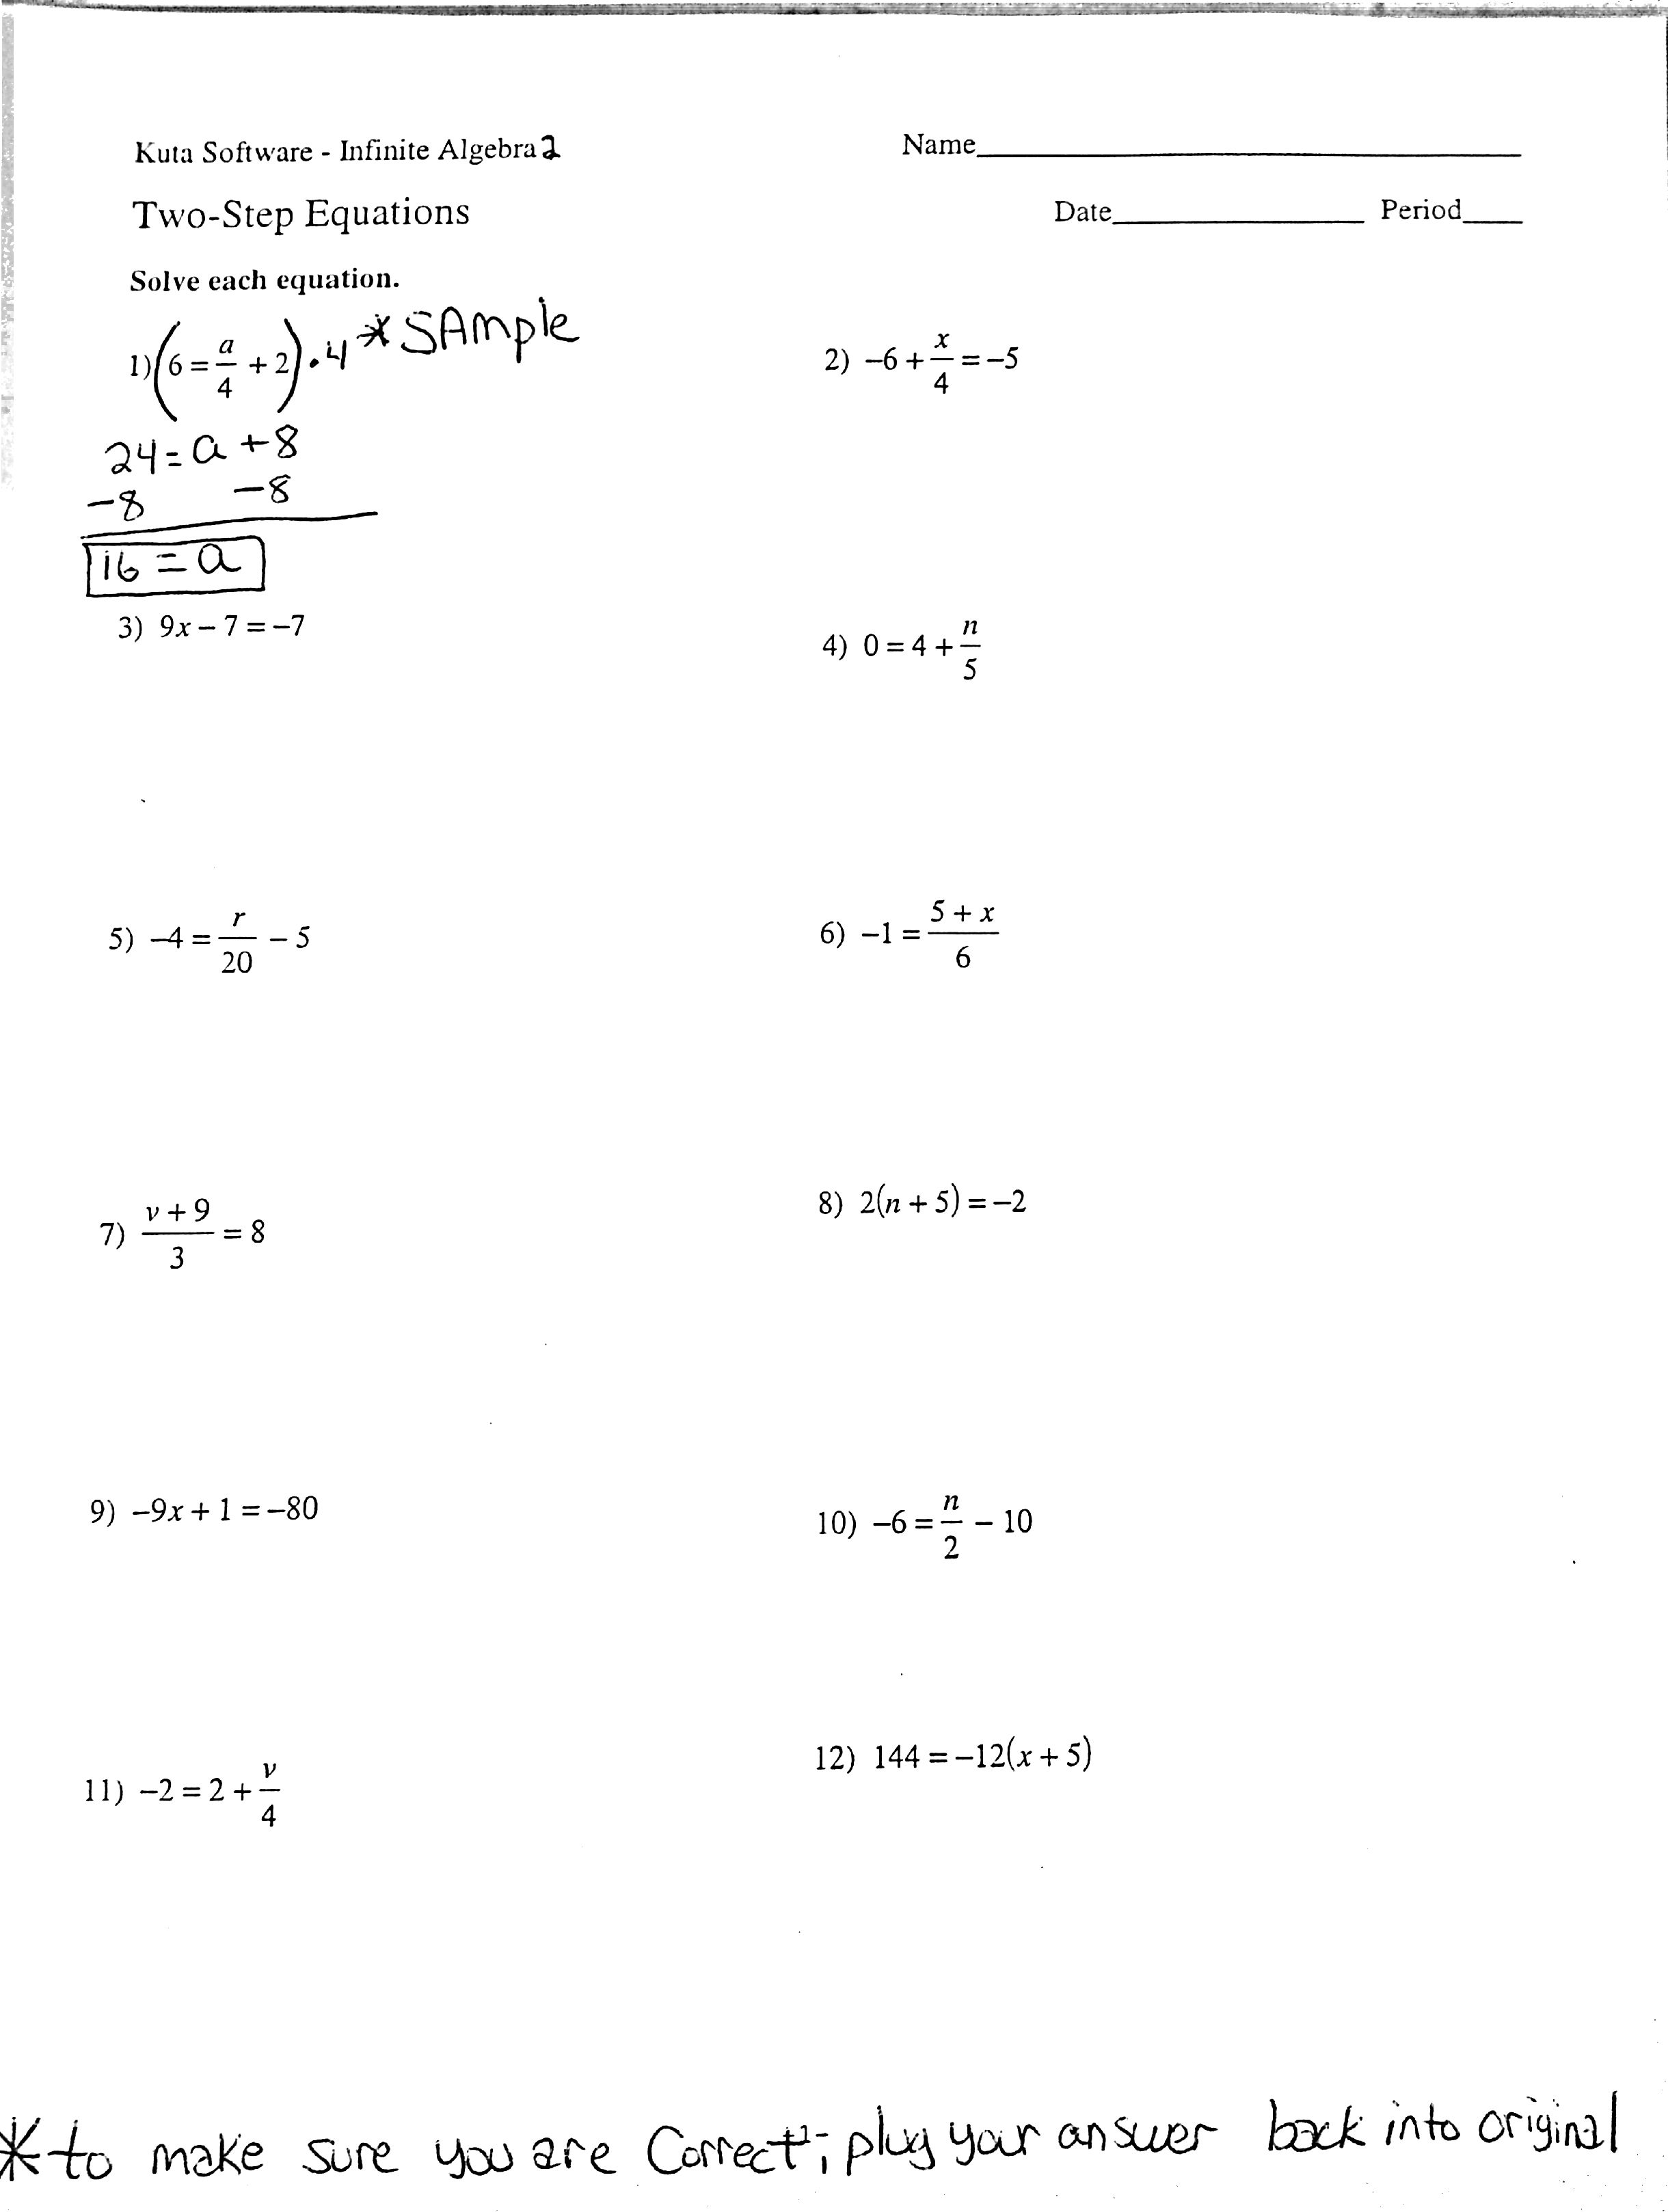 worksheet Multi Step Equations With Fractions Worksheet solve two step equations worksheet abitlikethis worksheets solving x3cbx3eequation worksheets